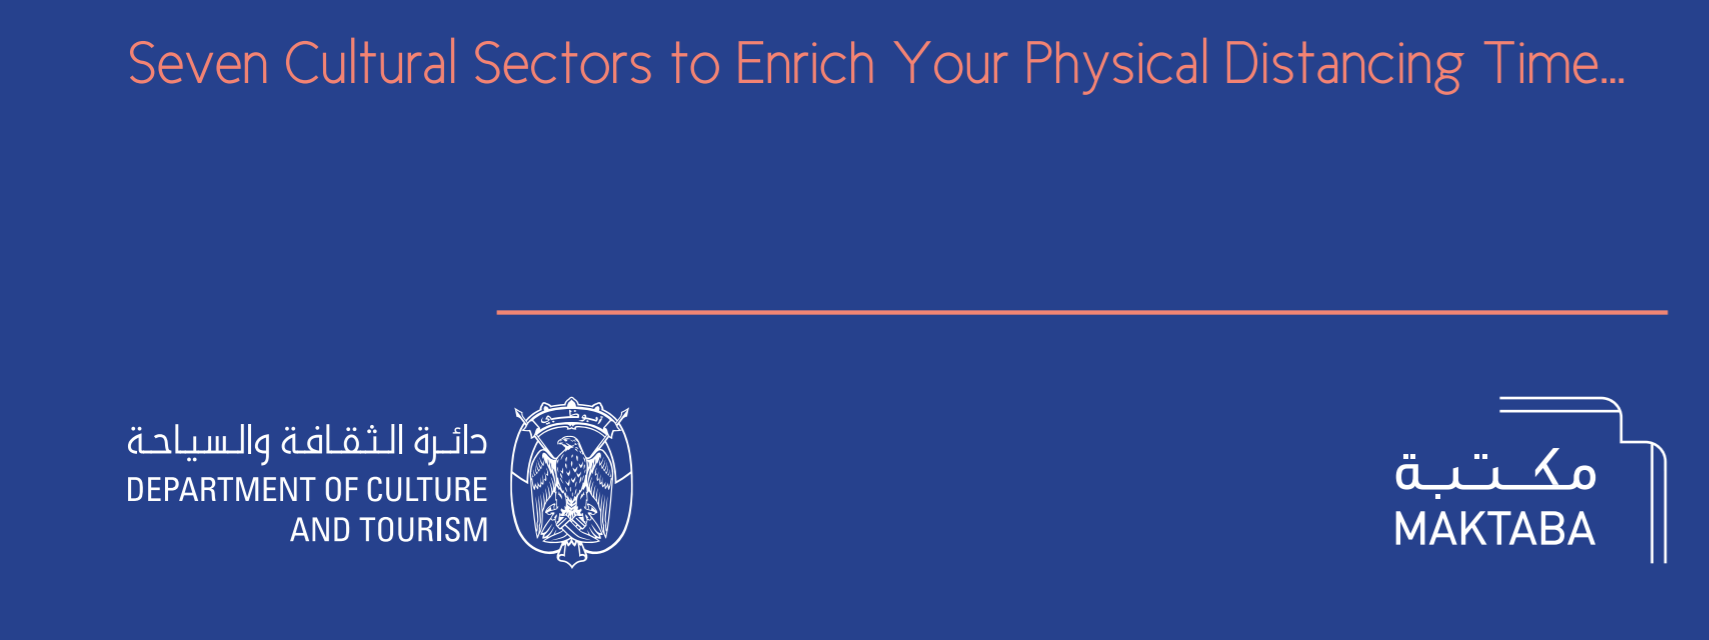 Seven-Cultural-Sectors-to-Enrich-Your-Physical-Distancing-Time